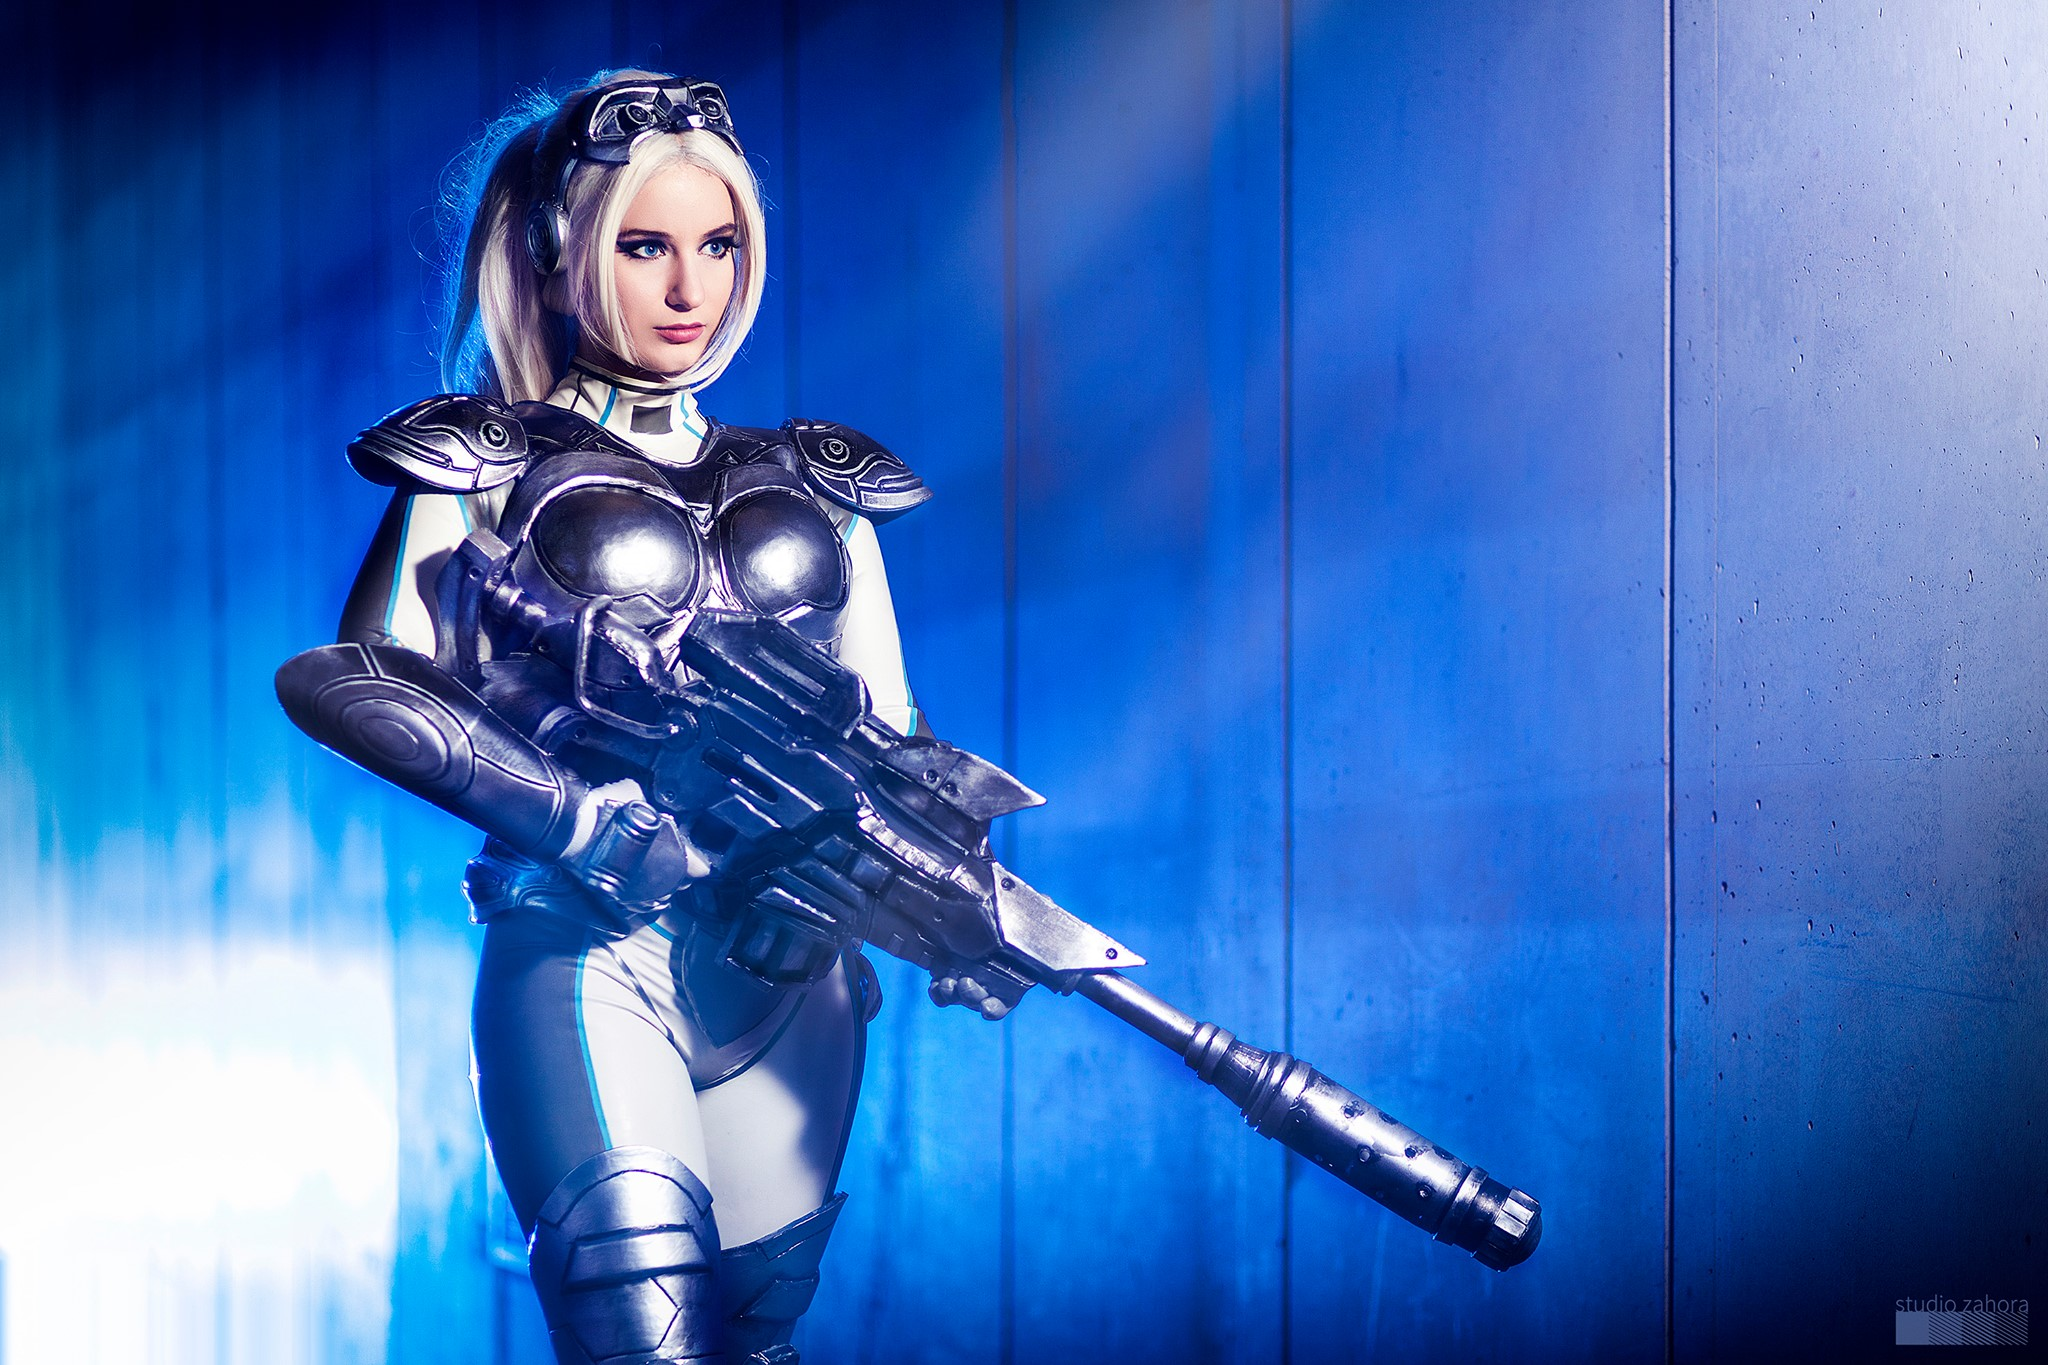 Nova, Heroes of the Storm's ranged assassin from the Starcraft universe, has seen her fair share of fighting but Polish cosplayer Calypsen nonetheless exhibits every bit of poise and confidence of the Ghost operative in this amazing photoshoot: